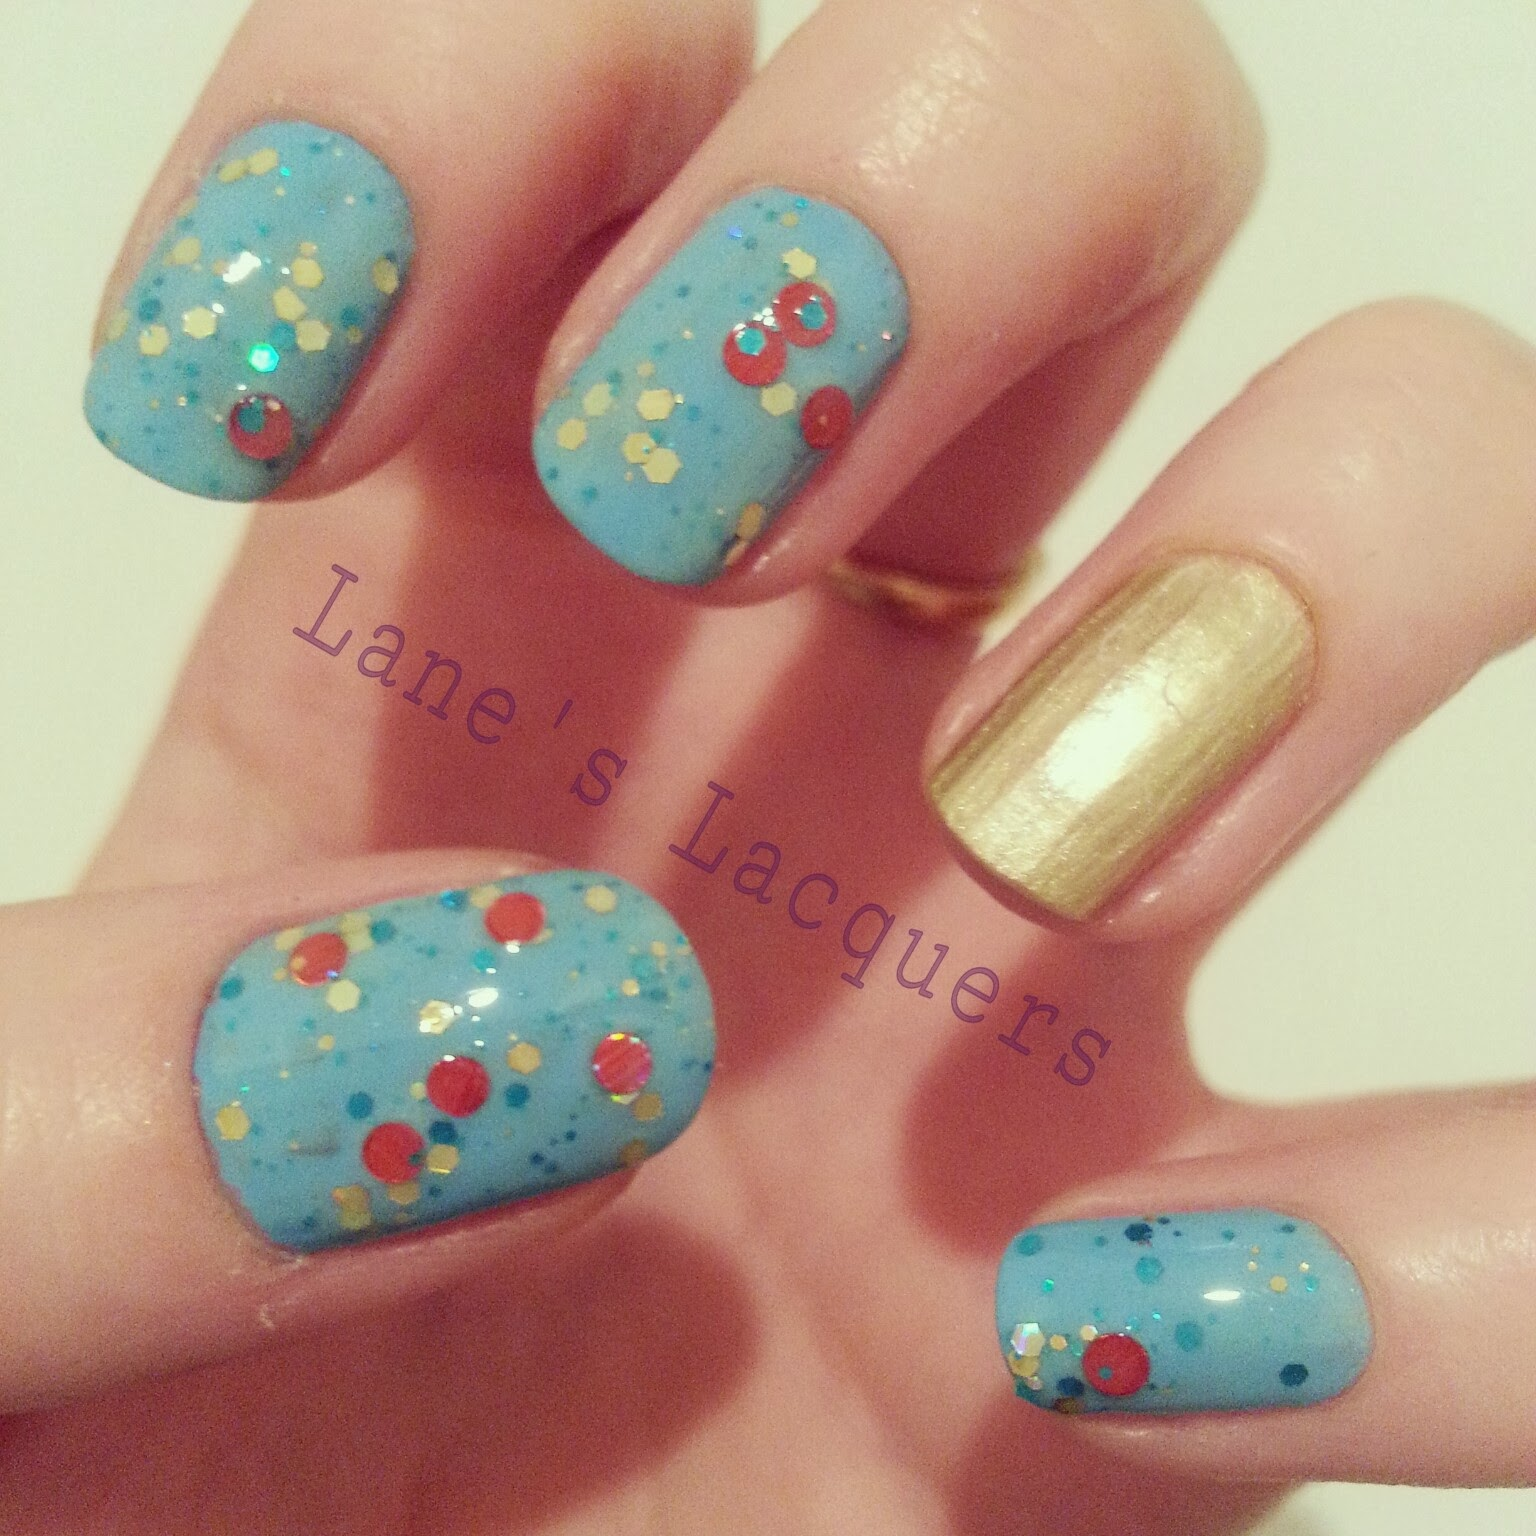 nail-lacquer-uk-naileymabob-collab-swatch-manicure